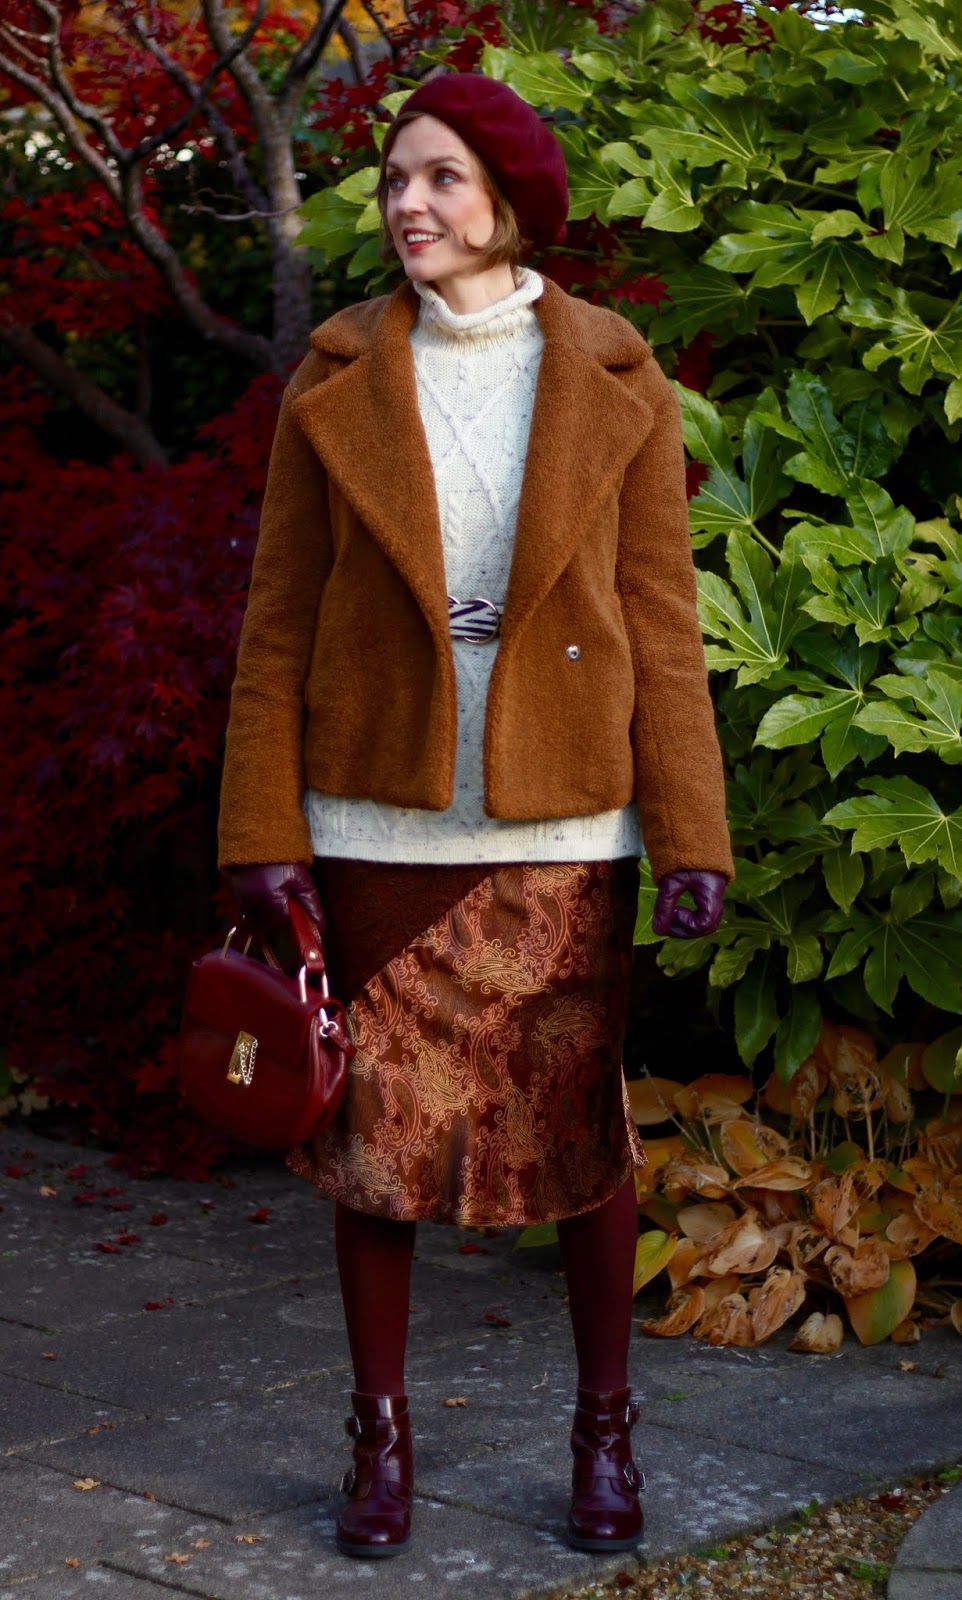 Vintage 90s skirt, Teddy Coat and Cosy Layers | Autumn Outfit Inspiration